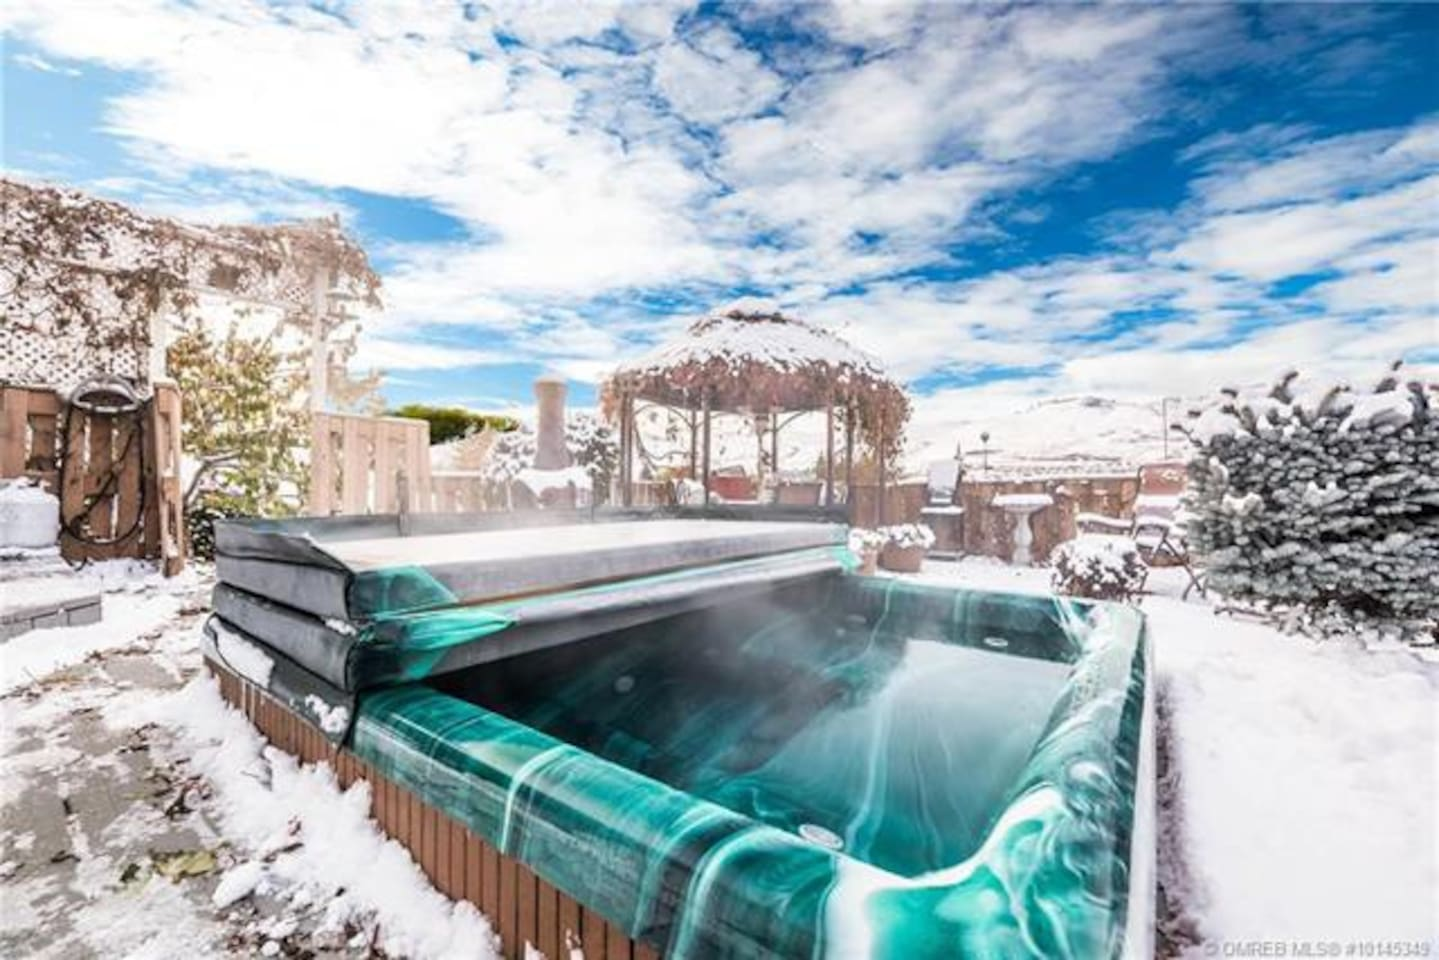 Hot tub on private back deck, this is what it looks like in winter!  Great after a day of skiing at Silver Star.